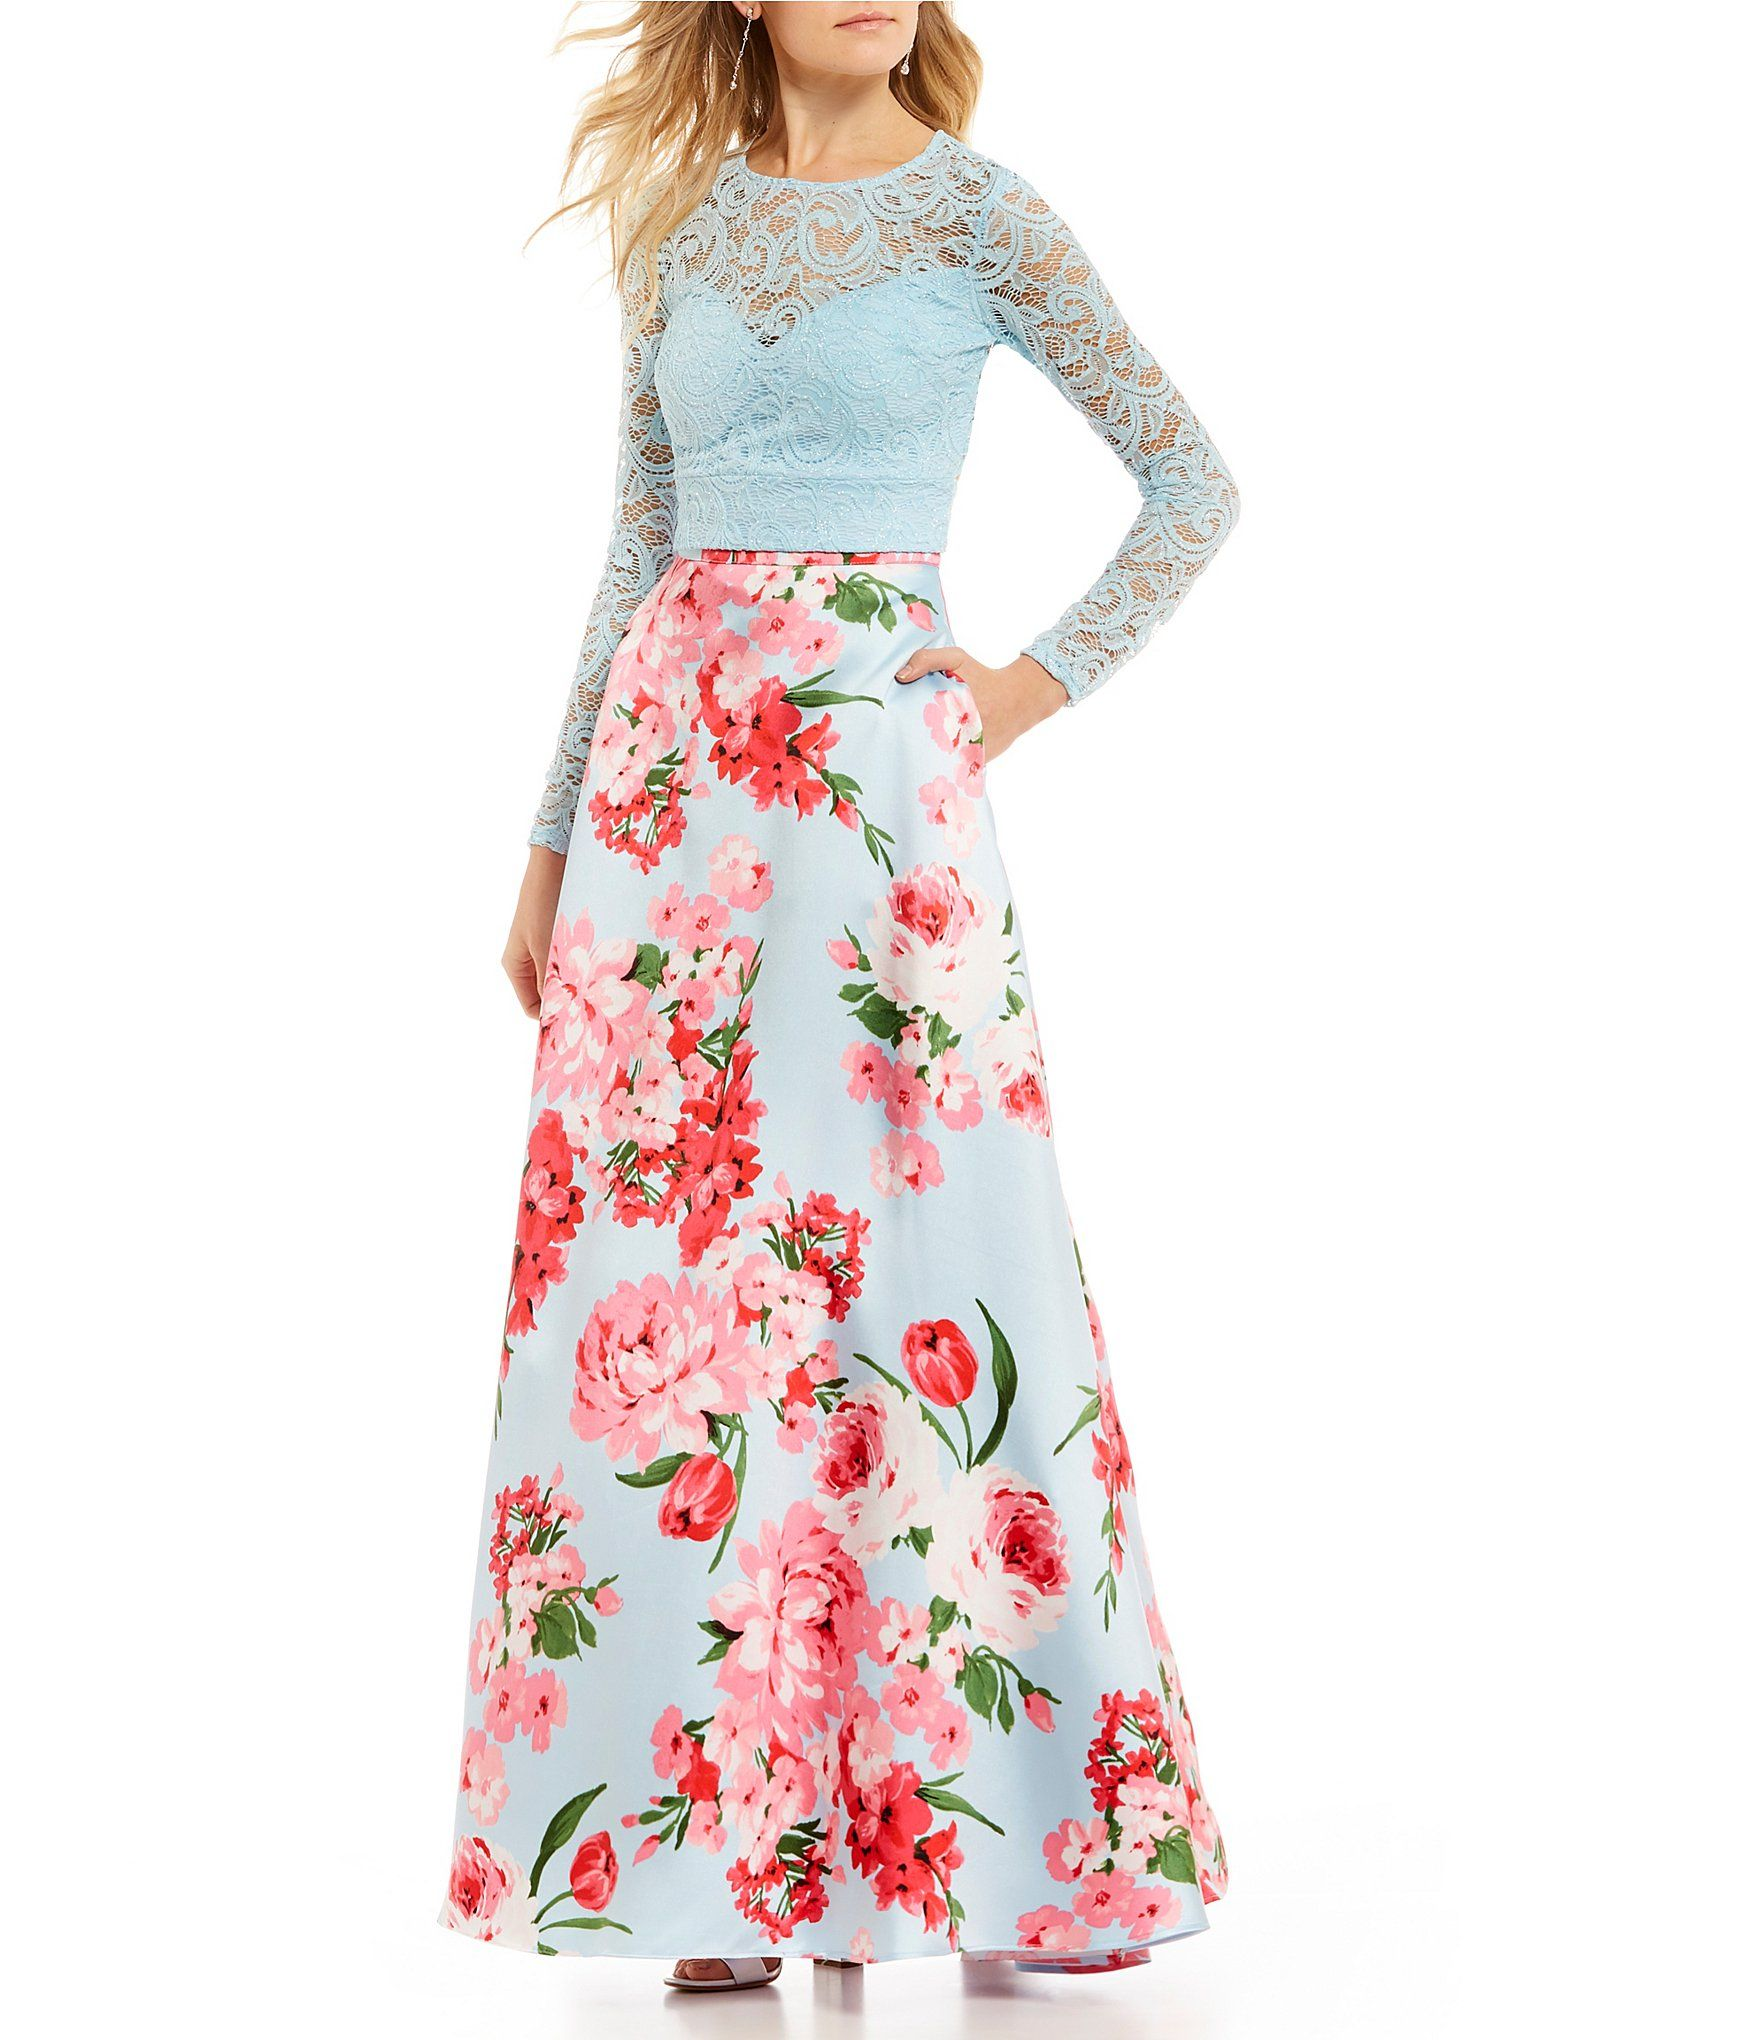 Shop For B Darlin Long Sleeve Lace Top With Floral Skirt Two Piece